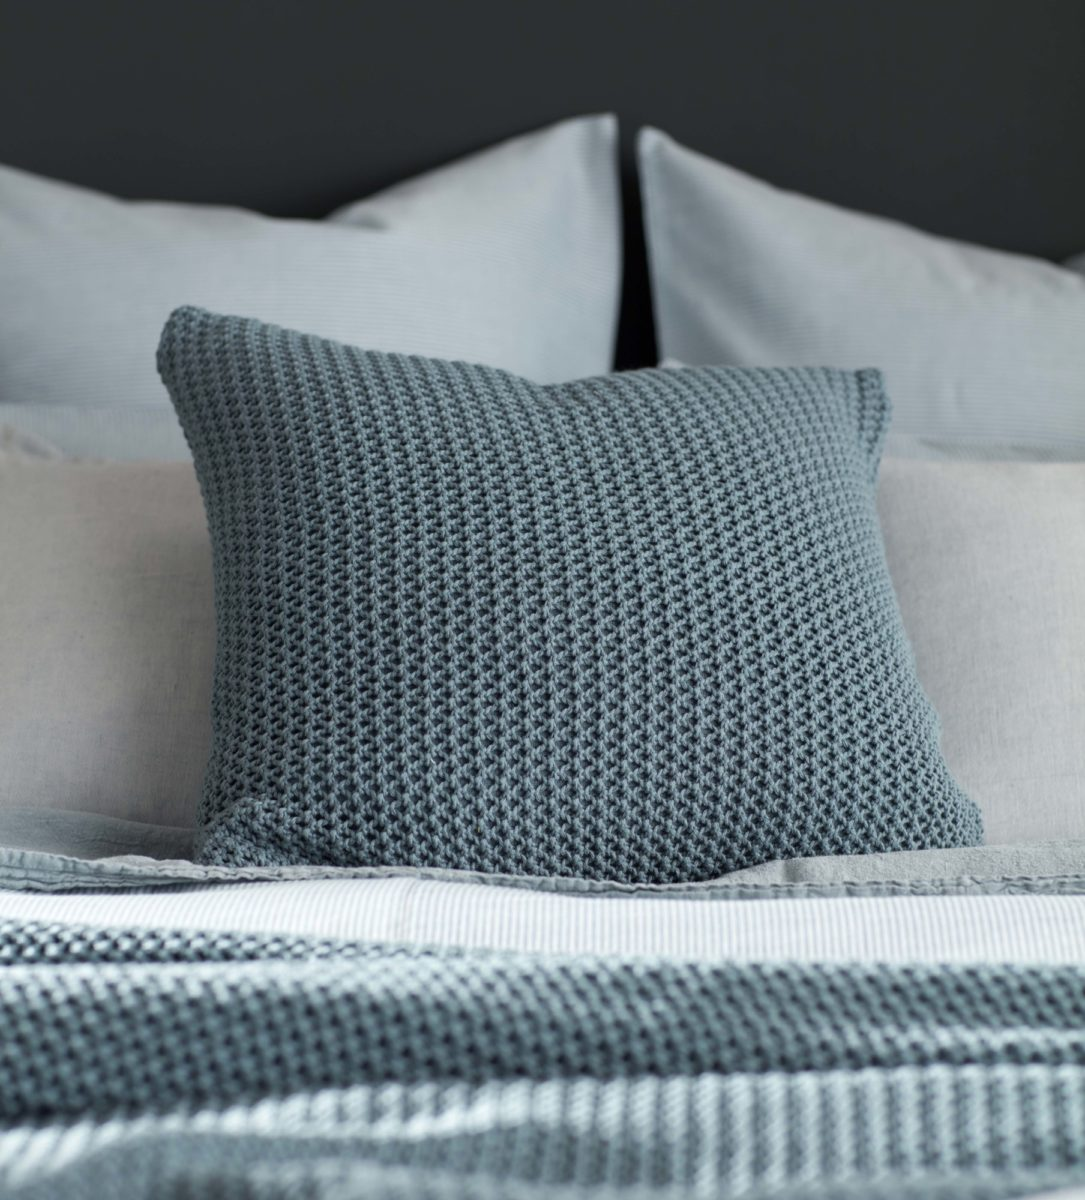 knitted teal cushion cover and bed throw secret linen store